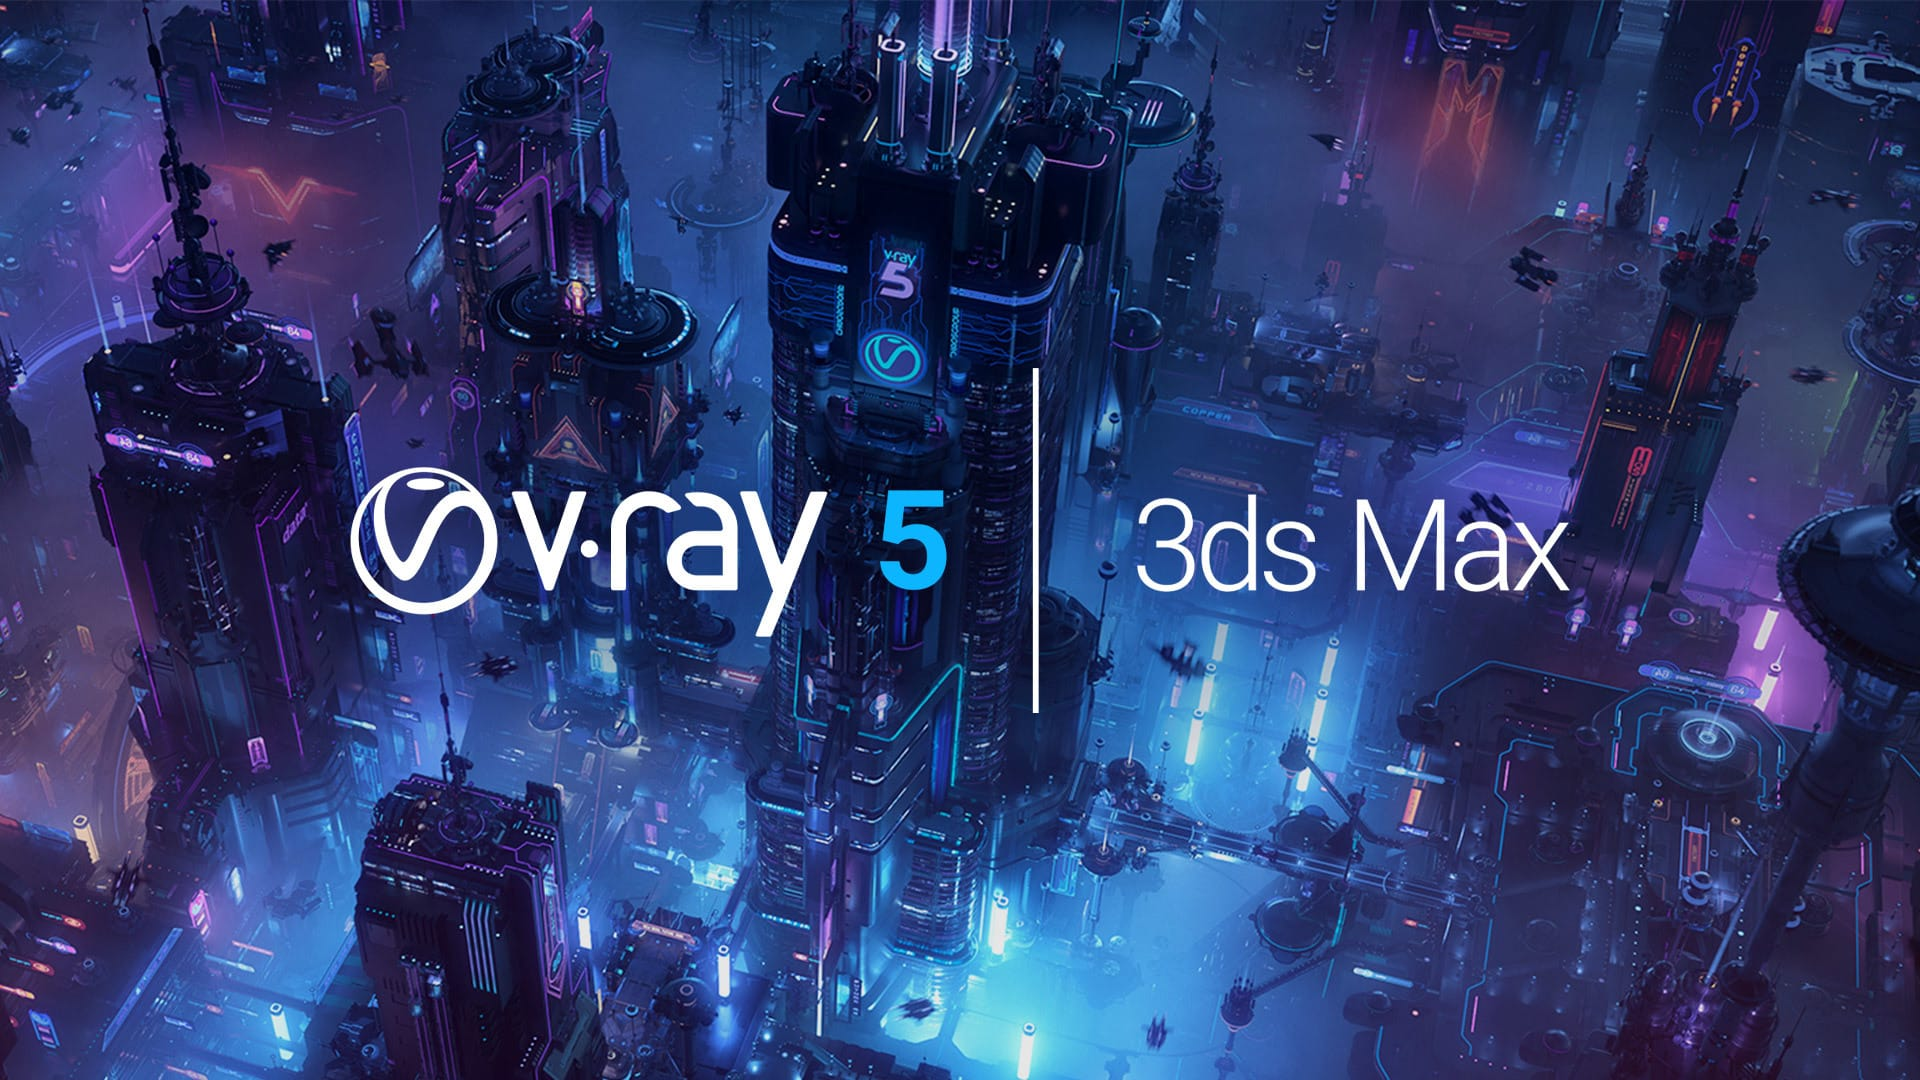 V-RAY 5 FOR 3DS MAX LAUNCHED